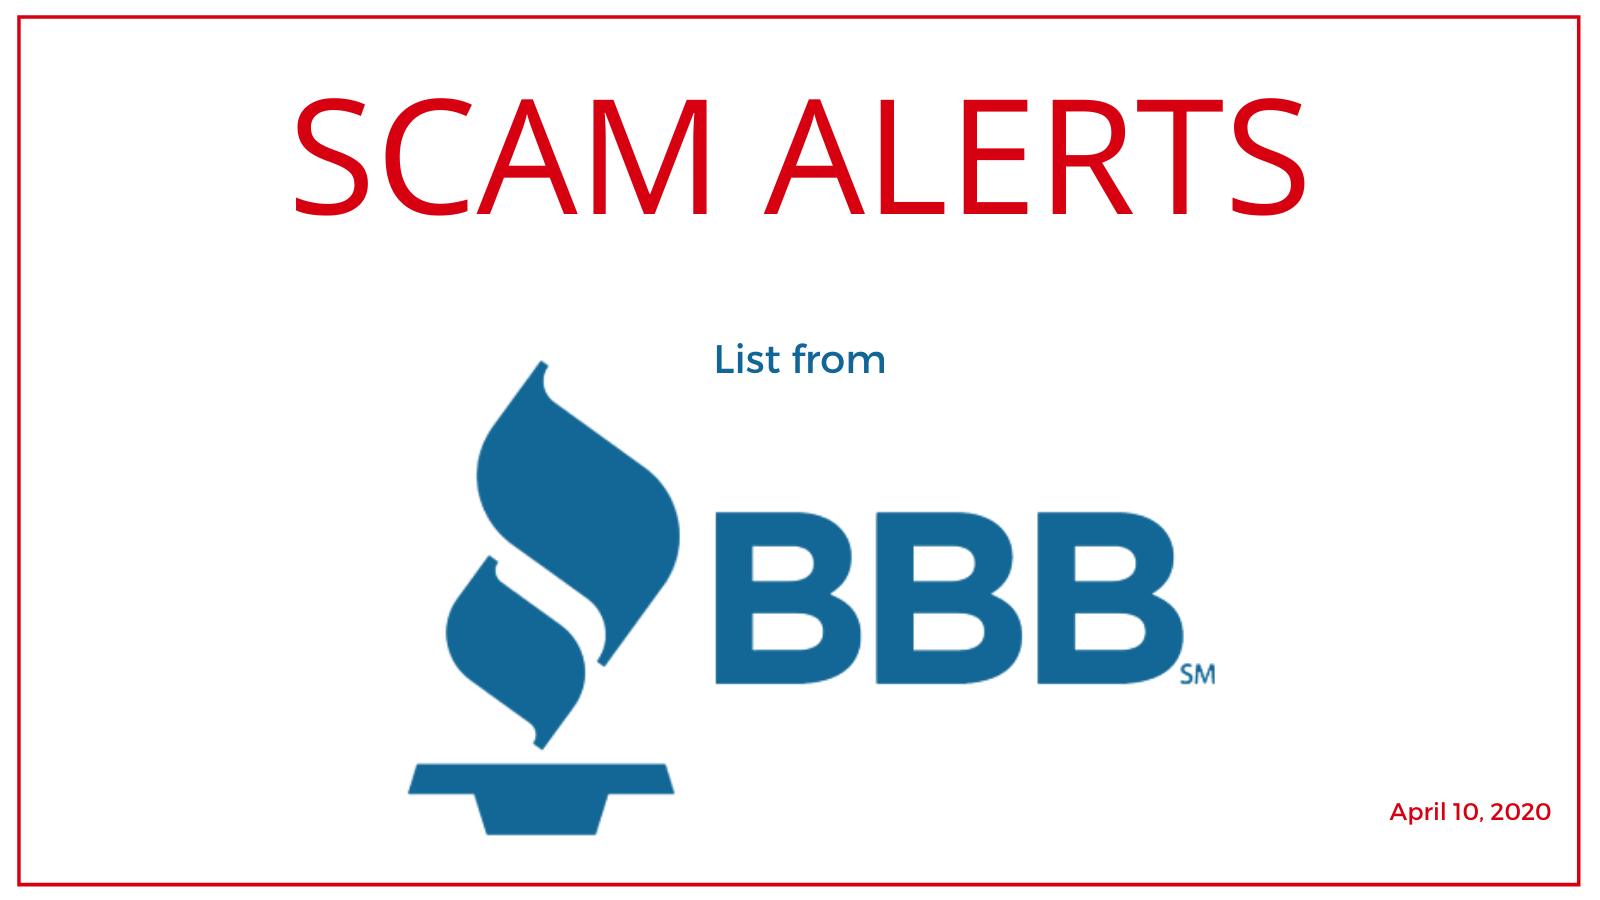 scam alerts from bbb